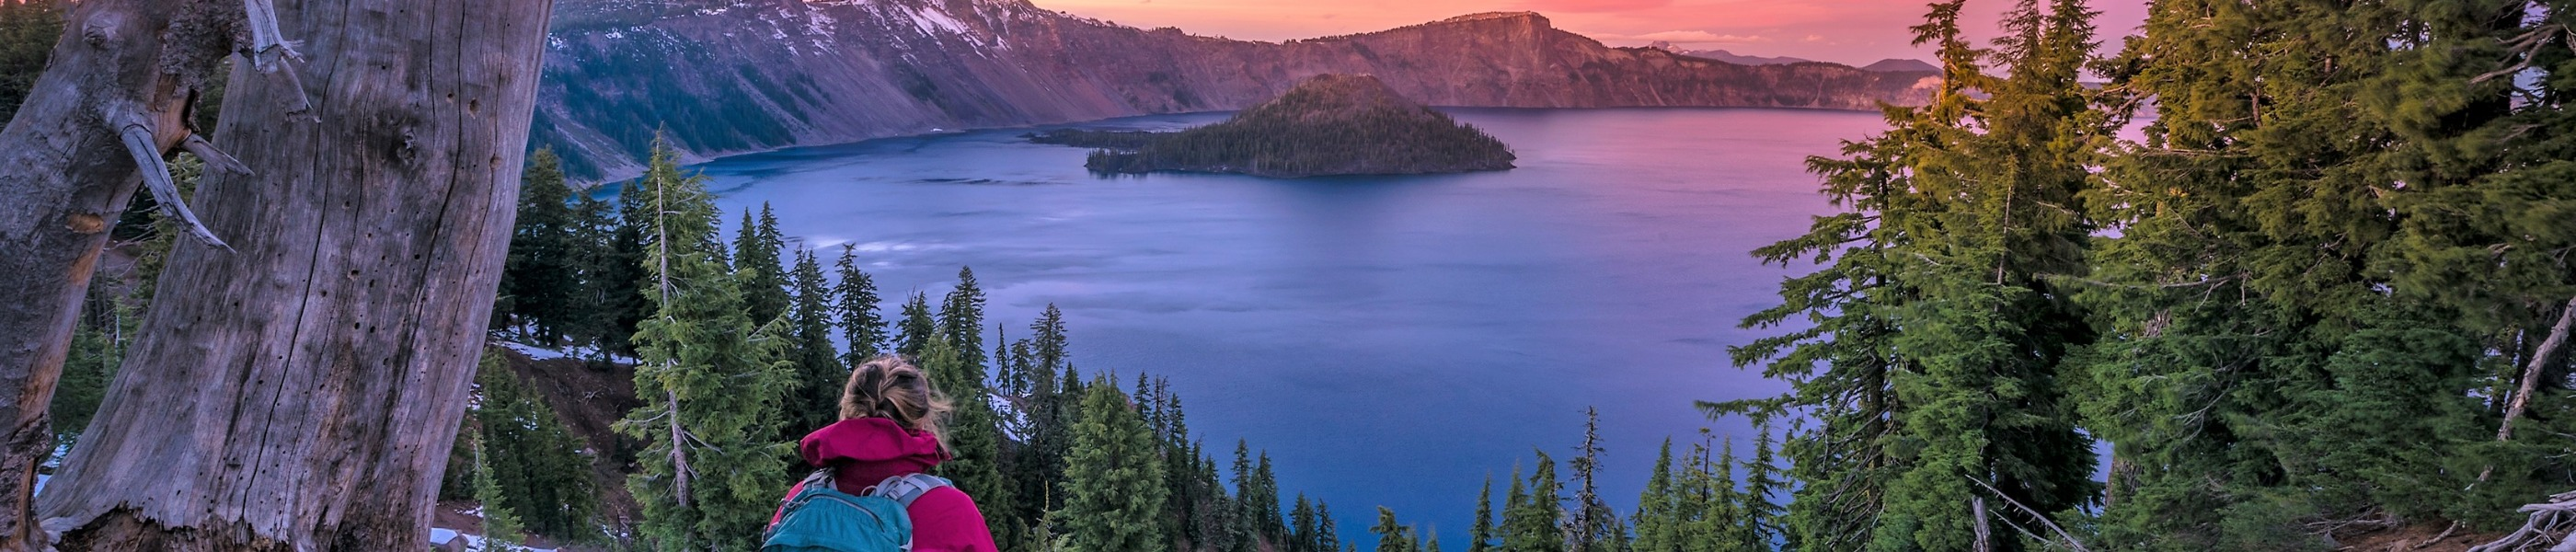 A hiker taking in Crater Lake's breathtaking beauty